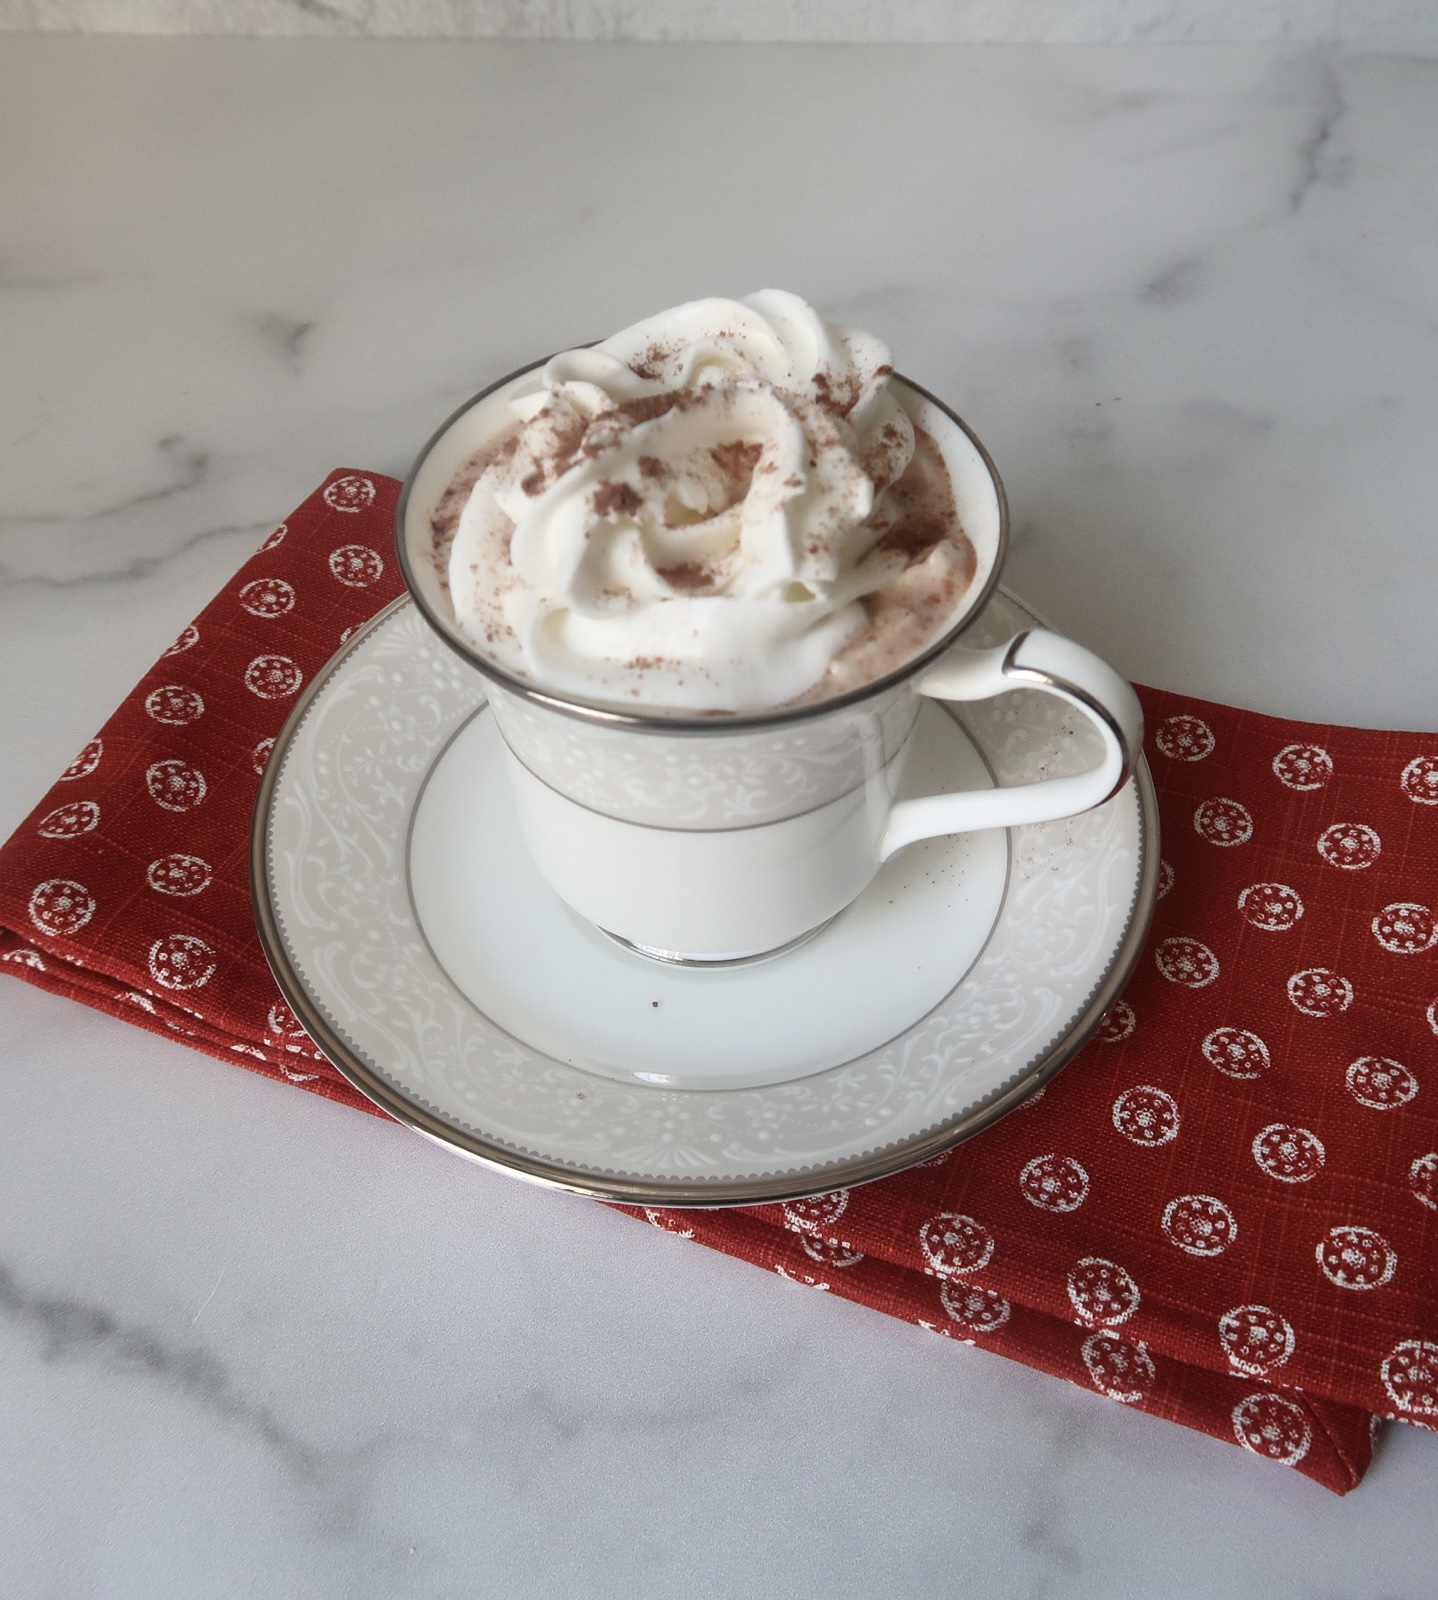 A white mug filled with low carb hot chocolate with whipped topping sits of a red towel on a marble countertop